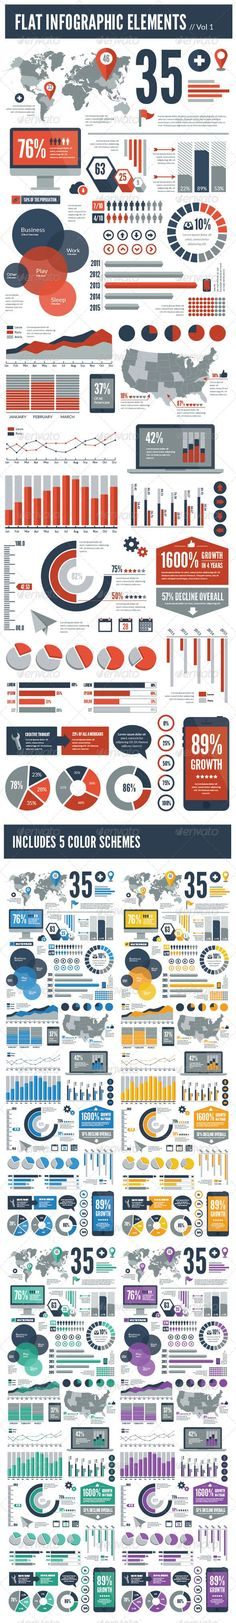 Flat Vector Infographic Elements - Infographics More: Information Design, Information Graphics, Web Design, Layout Design, Design Trends, Cv Website, Magazin Design, Plakat Design, Charts And Graphs